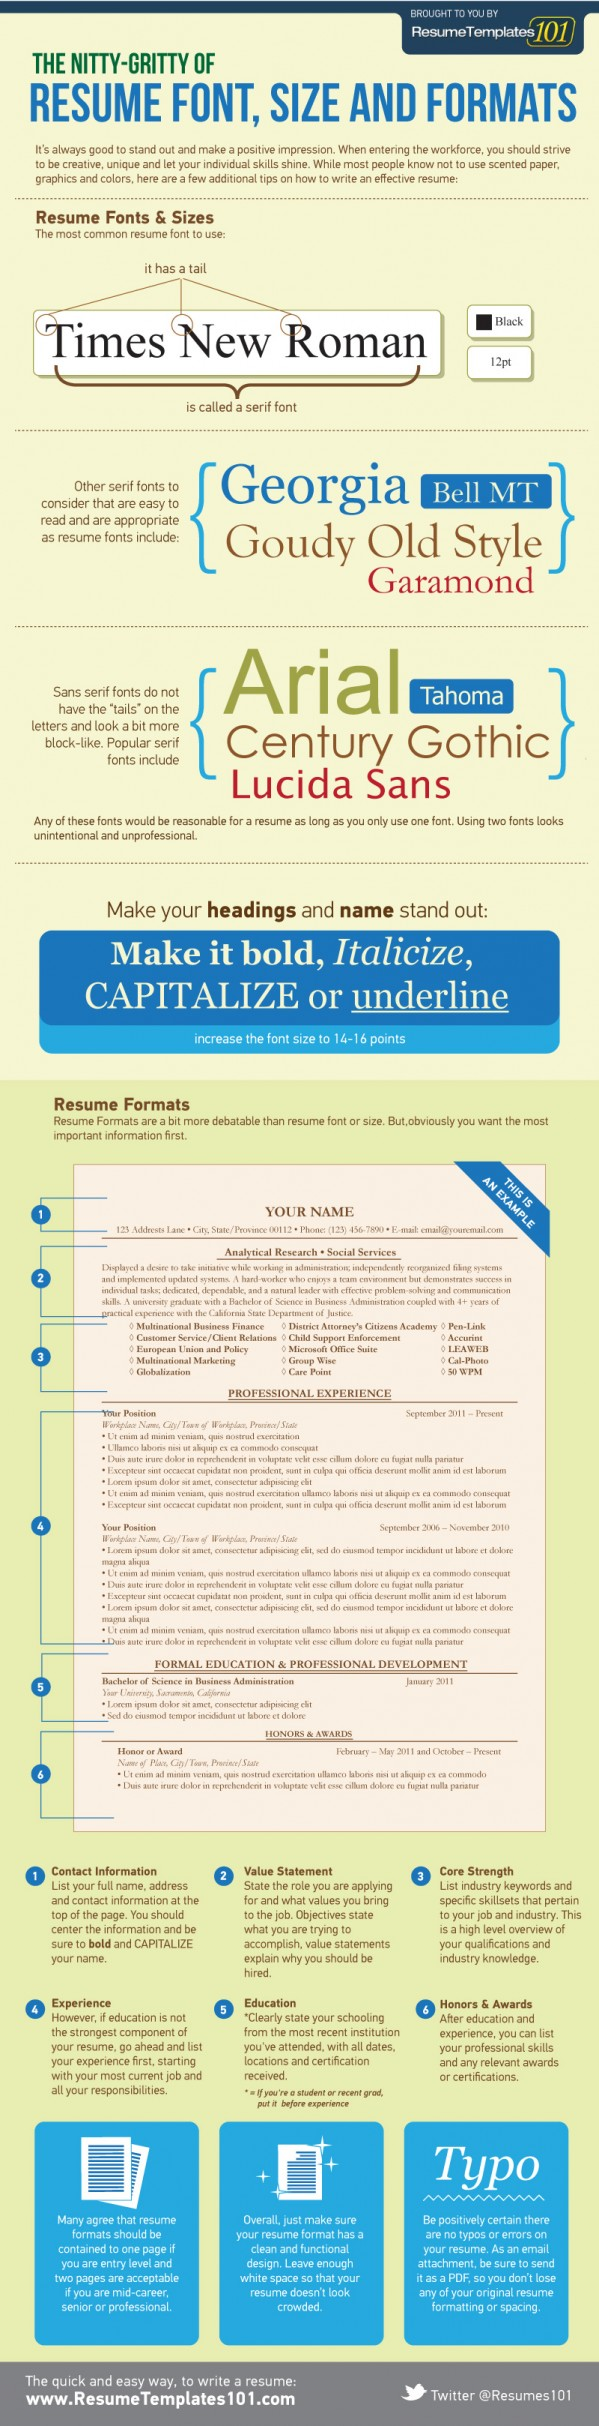 best cv font size and format for a successful job application